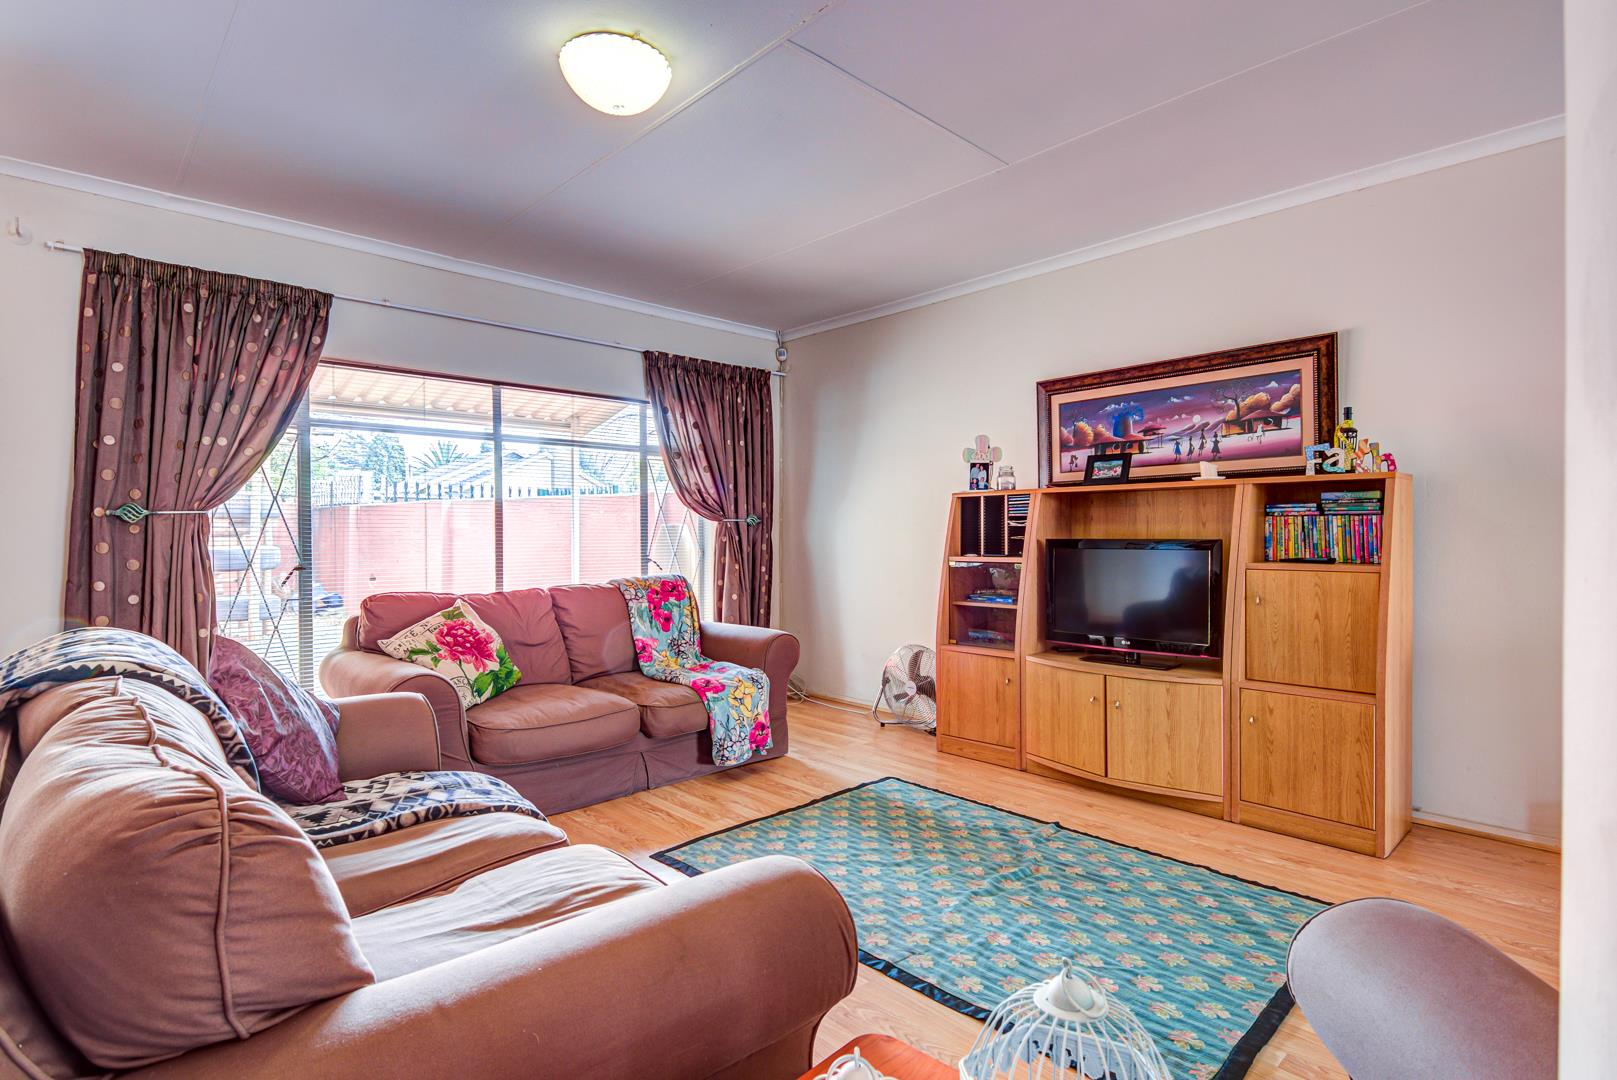 3 Bedroom House For Sale in Birchleigh